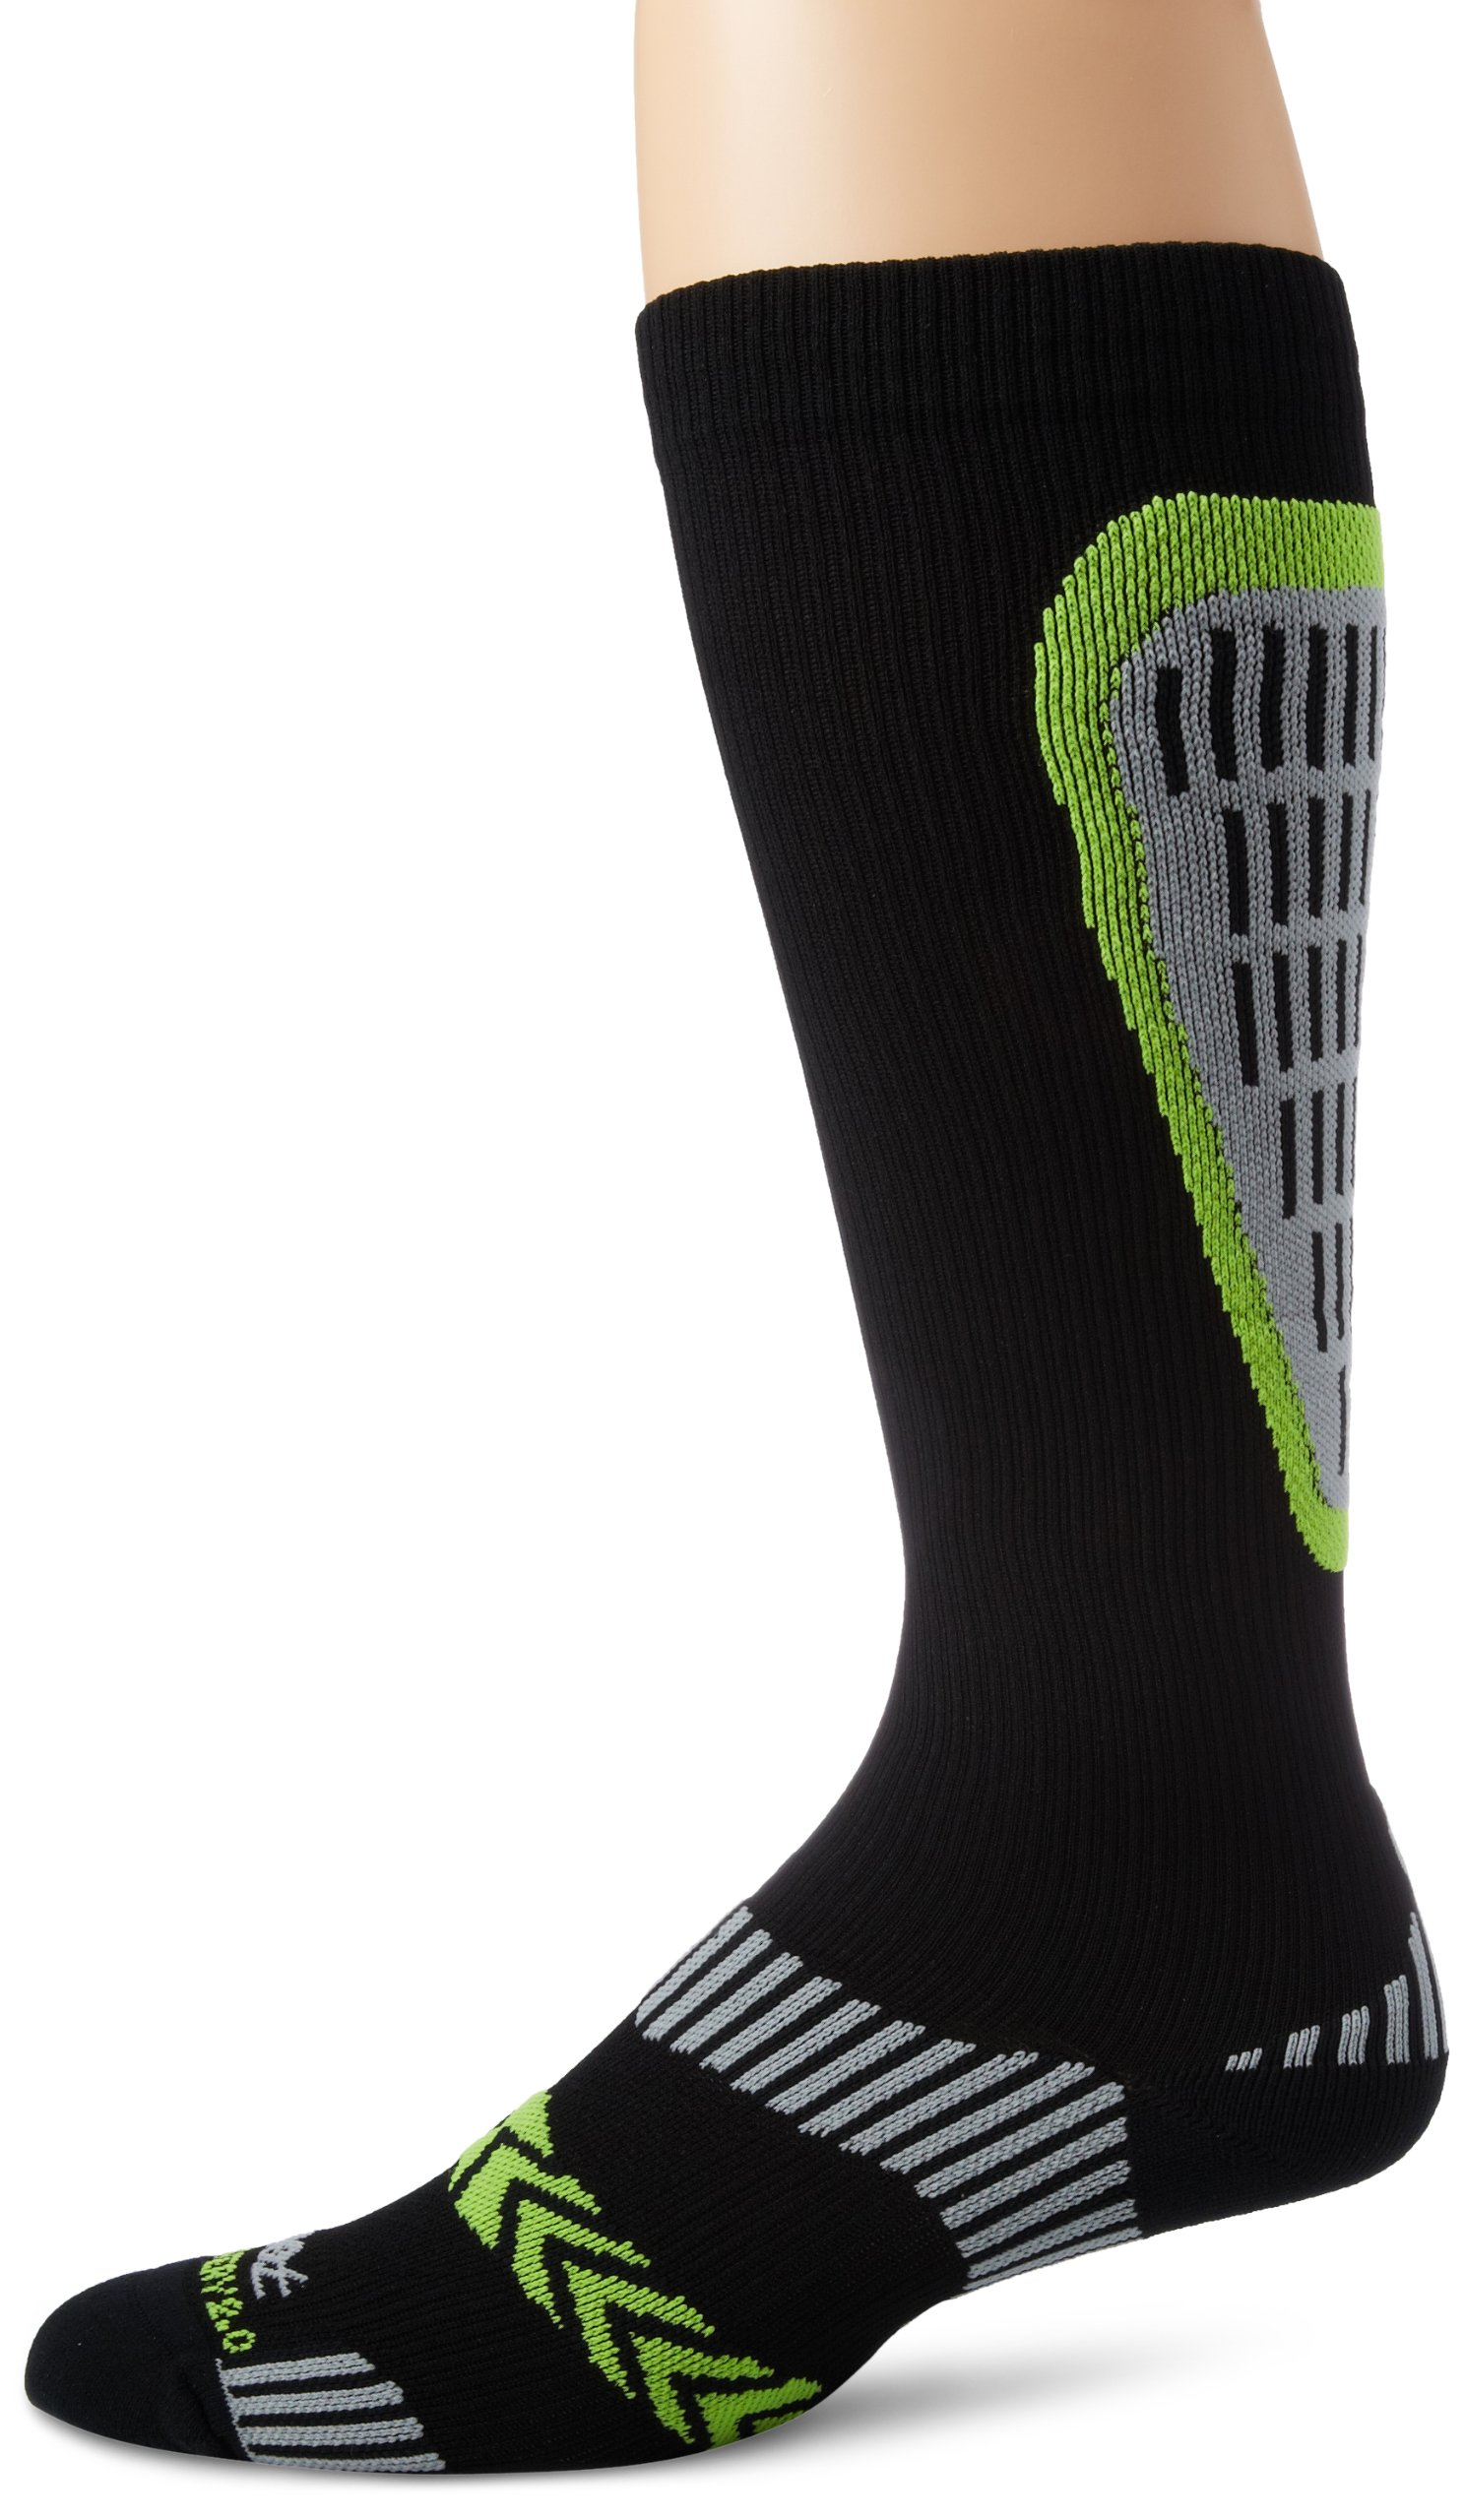 Zoot Sports Men's Ultra Recovery 2.0 CRX Socks, Black/Safety Yellow, 4 by Zoot (Image #1)